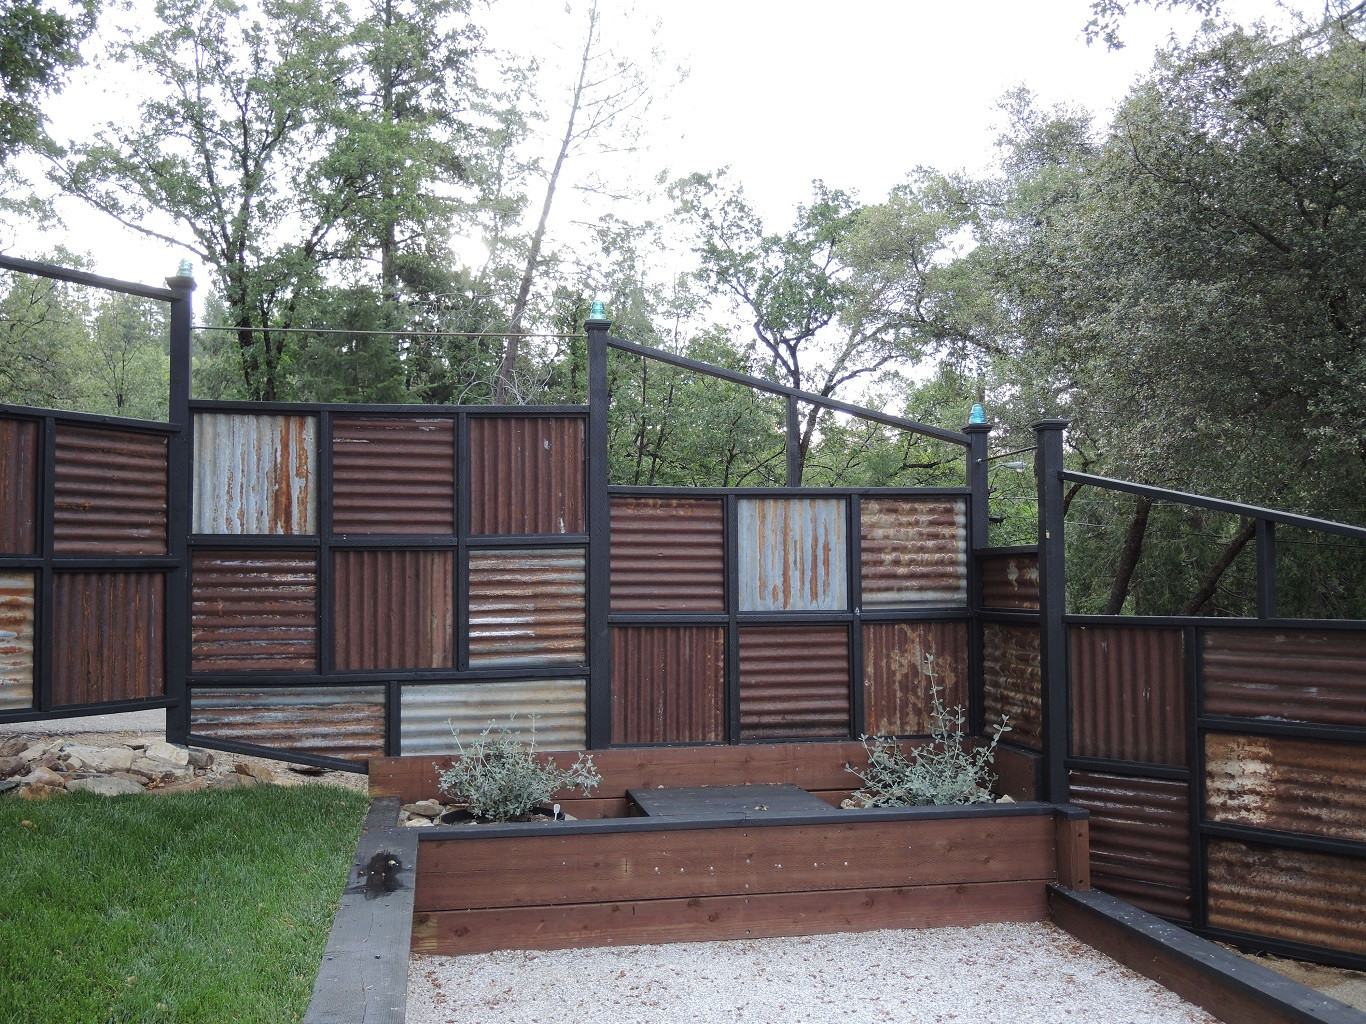 Best ideas about Corrugated Metal Fence DIY . Save or Pin Corrugated Metal Privacy Fence Now.